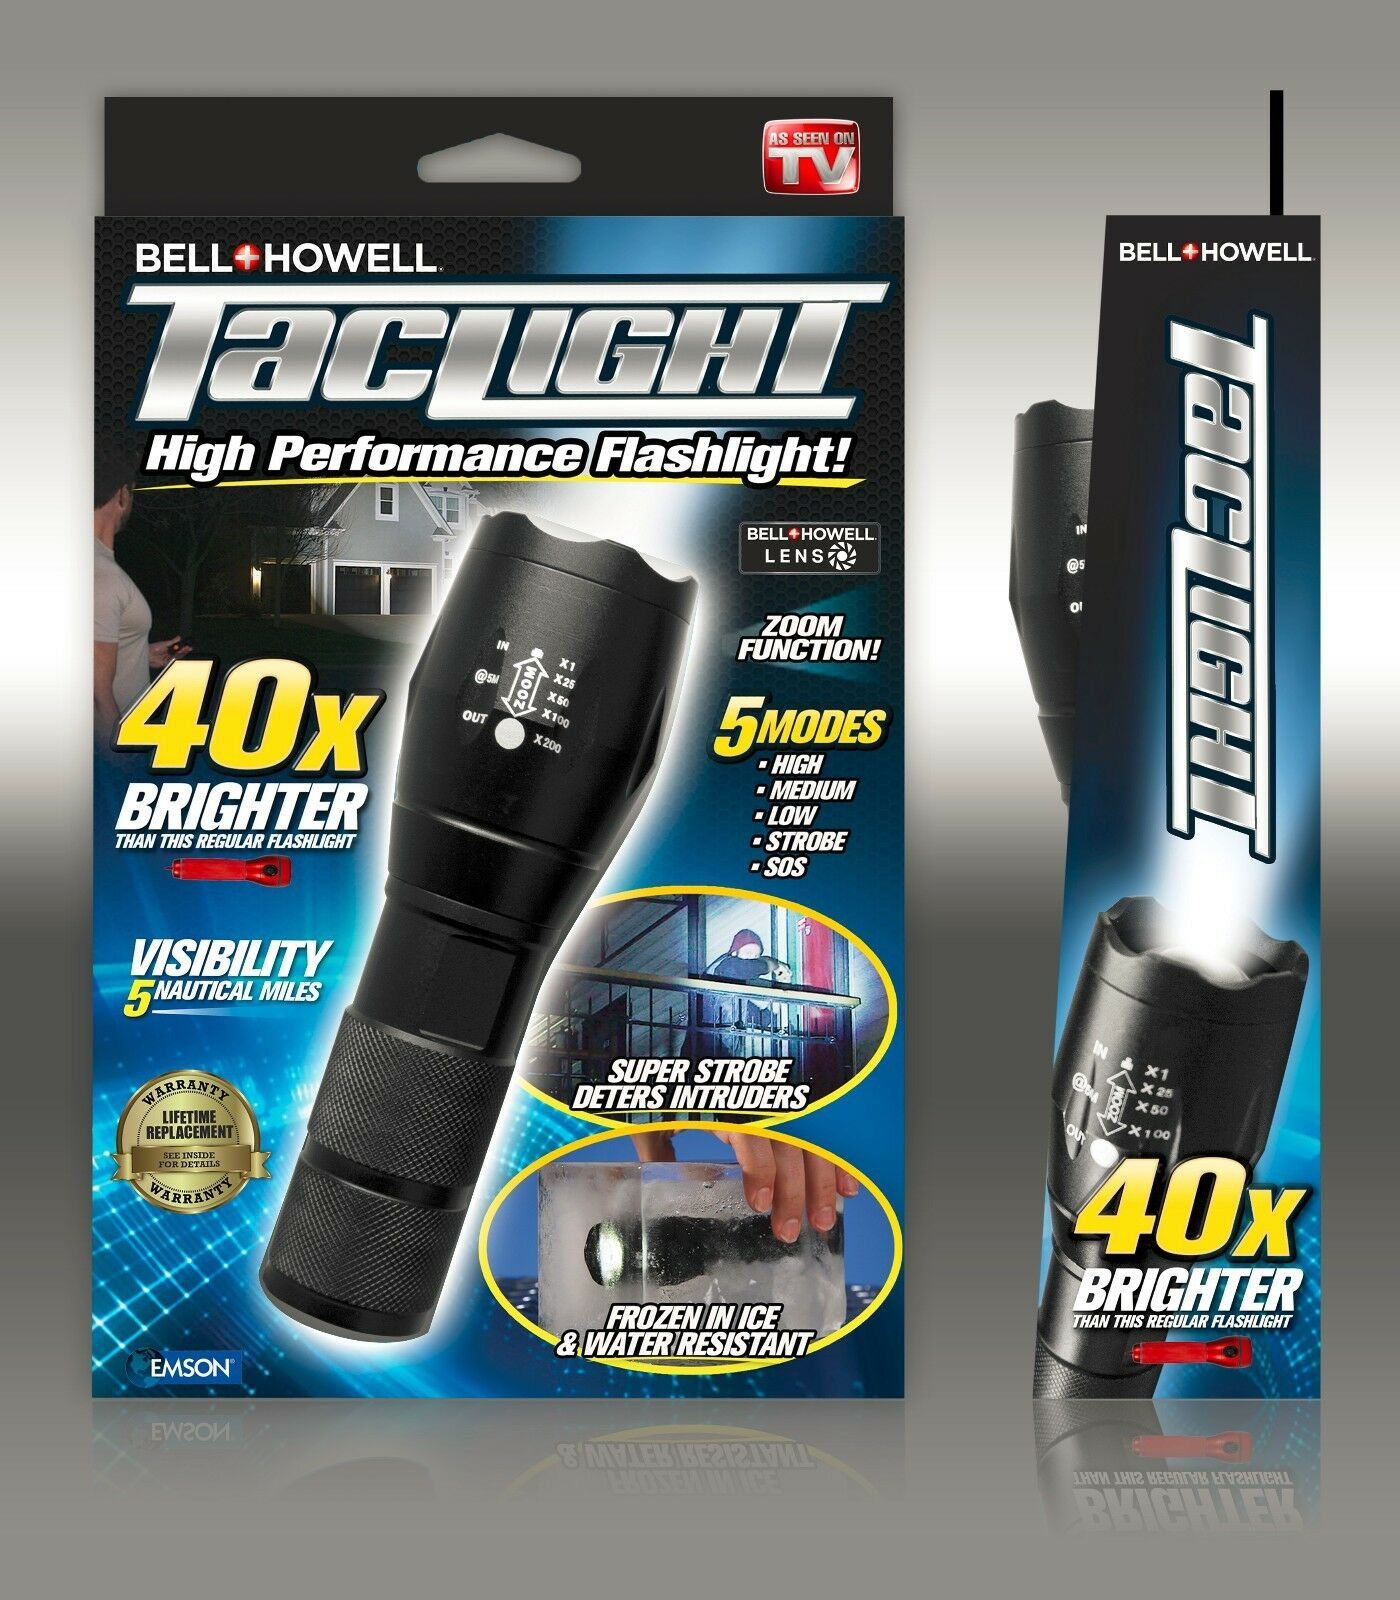 outdoor lights australia with Bell Howell Taclight High Powered Tactical Flashlight 122086946984 on 322440872691 moreover Light Bulb Mirror Dressing Table further Solar Cooker Box Type 1067915 also Henley Sq Catenary Lighting in addition 55419837 Tropical House Tropical Gold Coast Tweed.